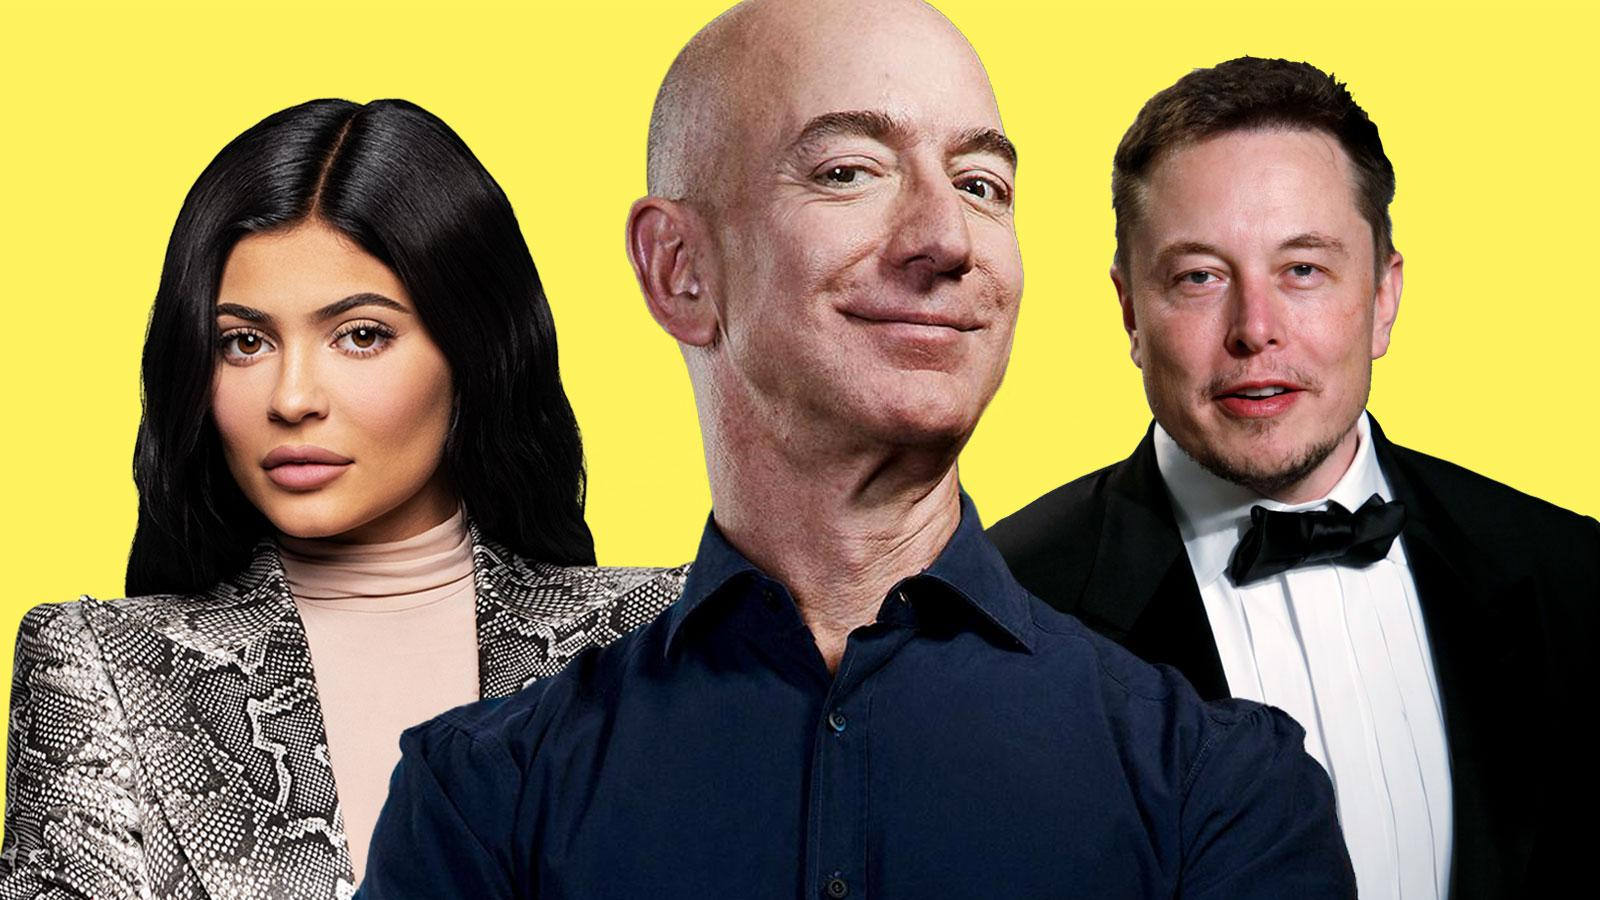 The 10 Richest People in the World in 2019